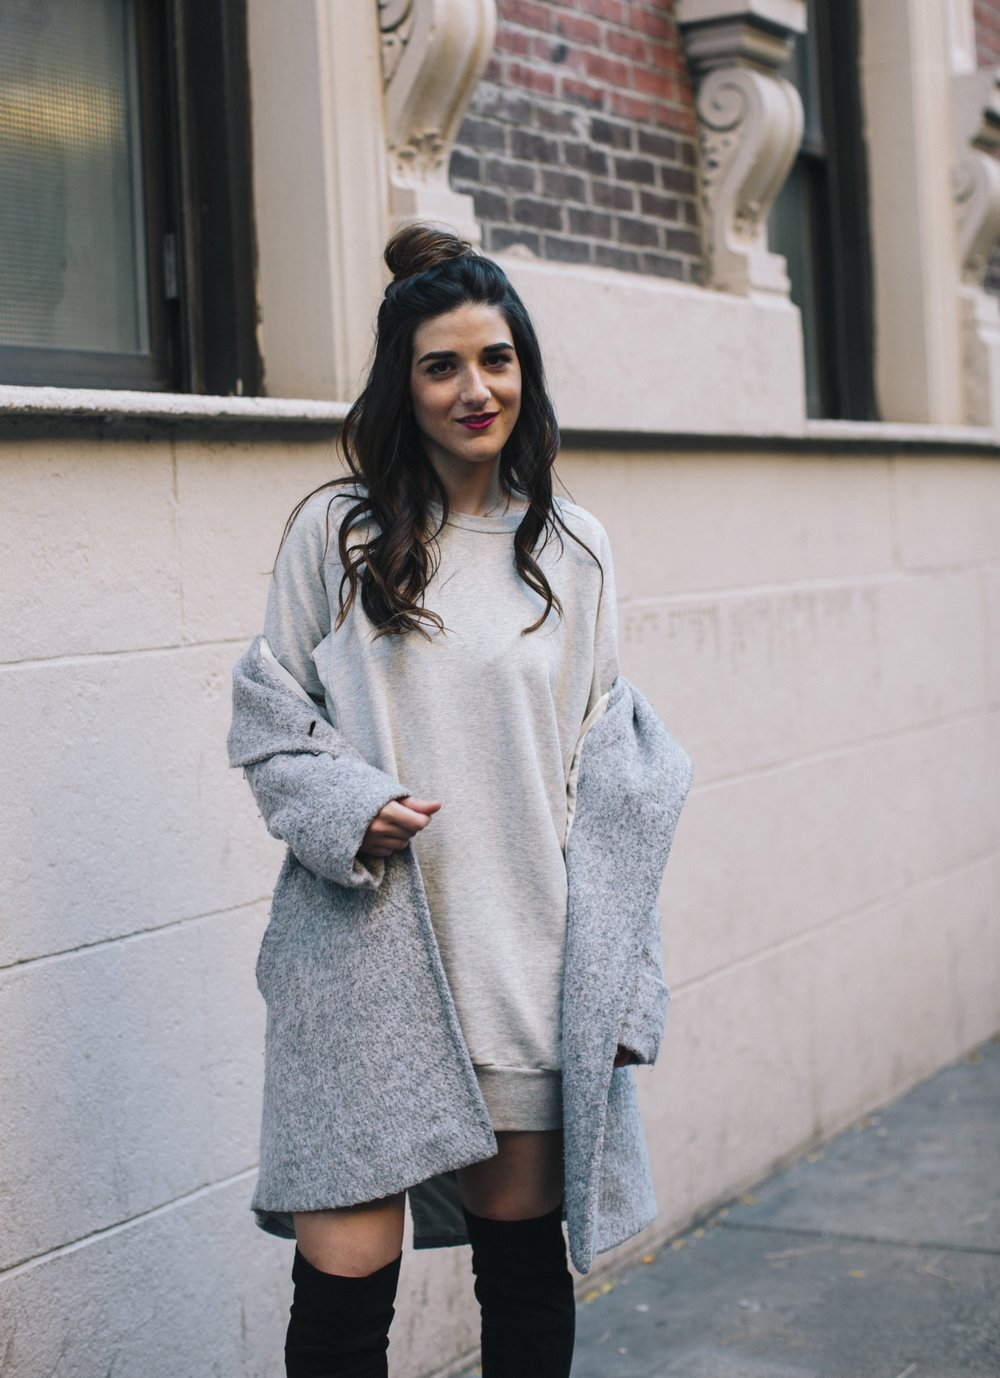 All Grey Look OTK Boots Why I Hate Fashion Week Esther Santer Fashion Blog Louboutins & Love NYC Street Style Blogger Outfit OOTD Trendy Sweatshirt Dress Topknot Coat Women Girl Shoes Shopping Zara Beauty Monochome Accessories Winter Wear Clothes Look.jpg